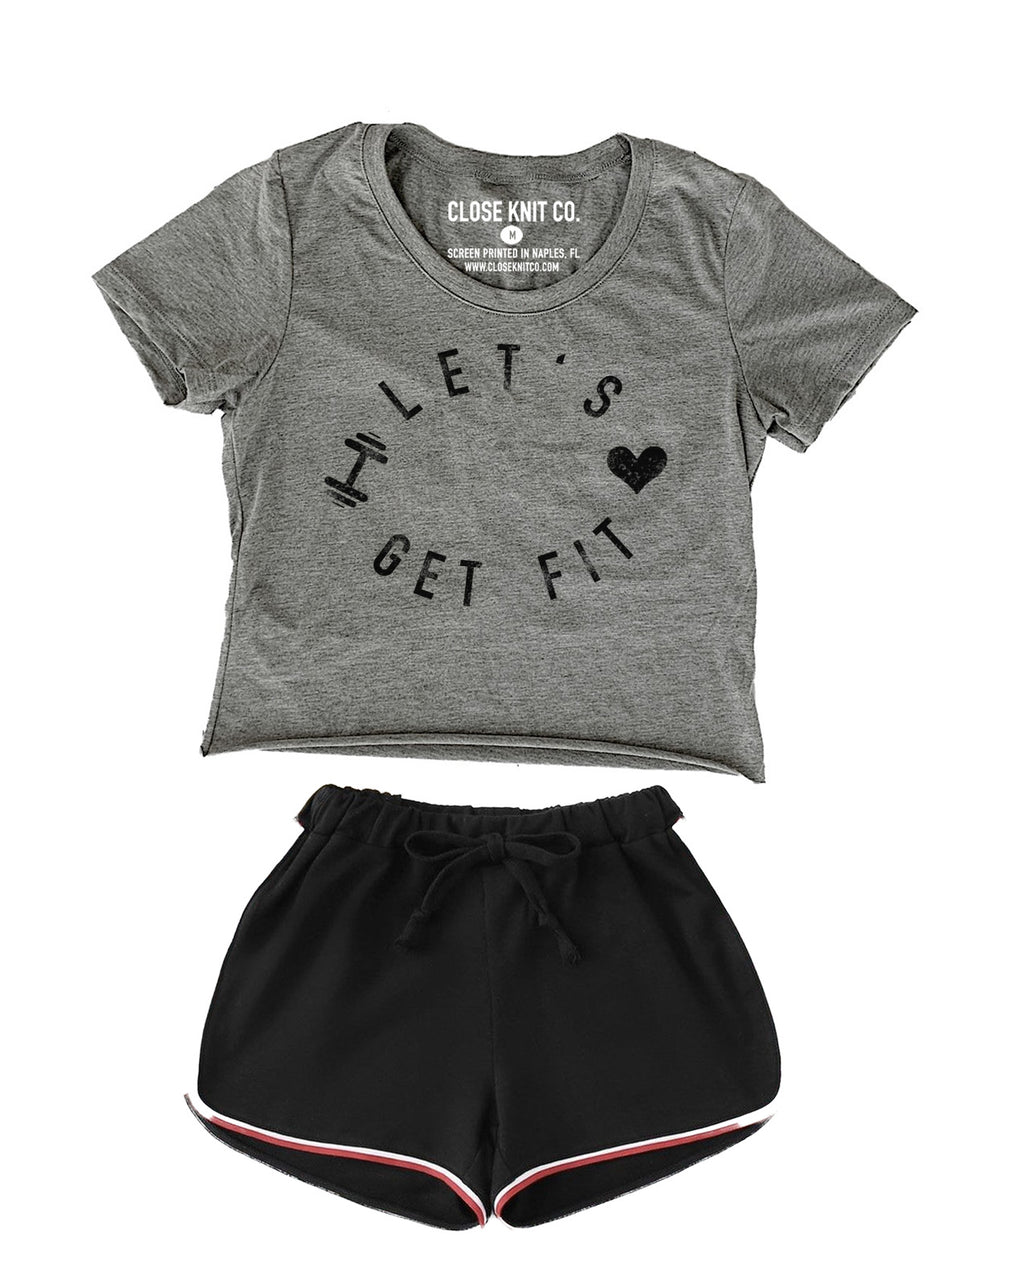 LET'S GET FIT CROP TOP